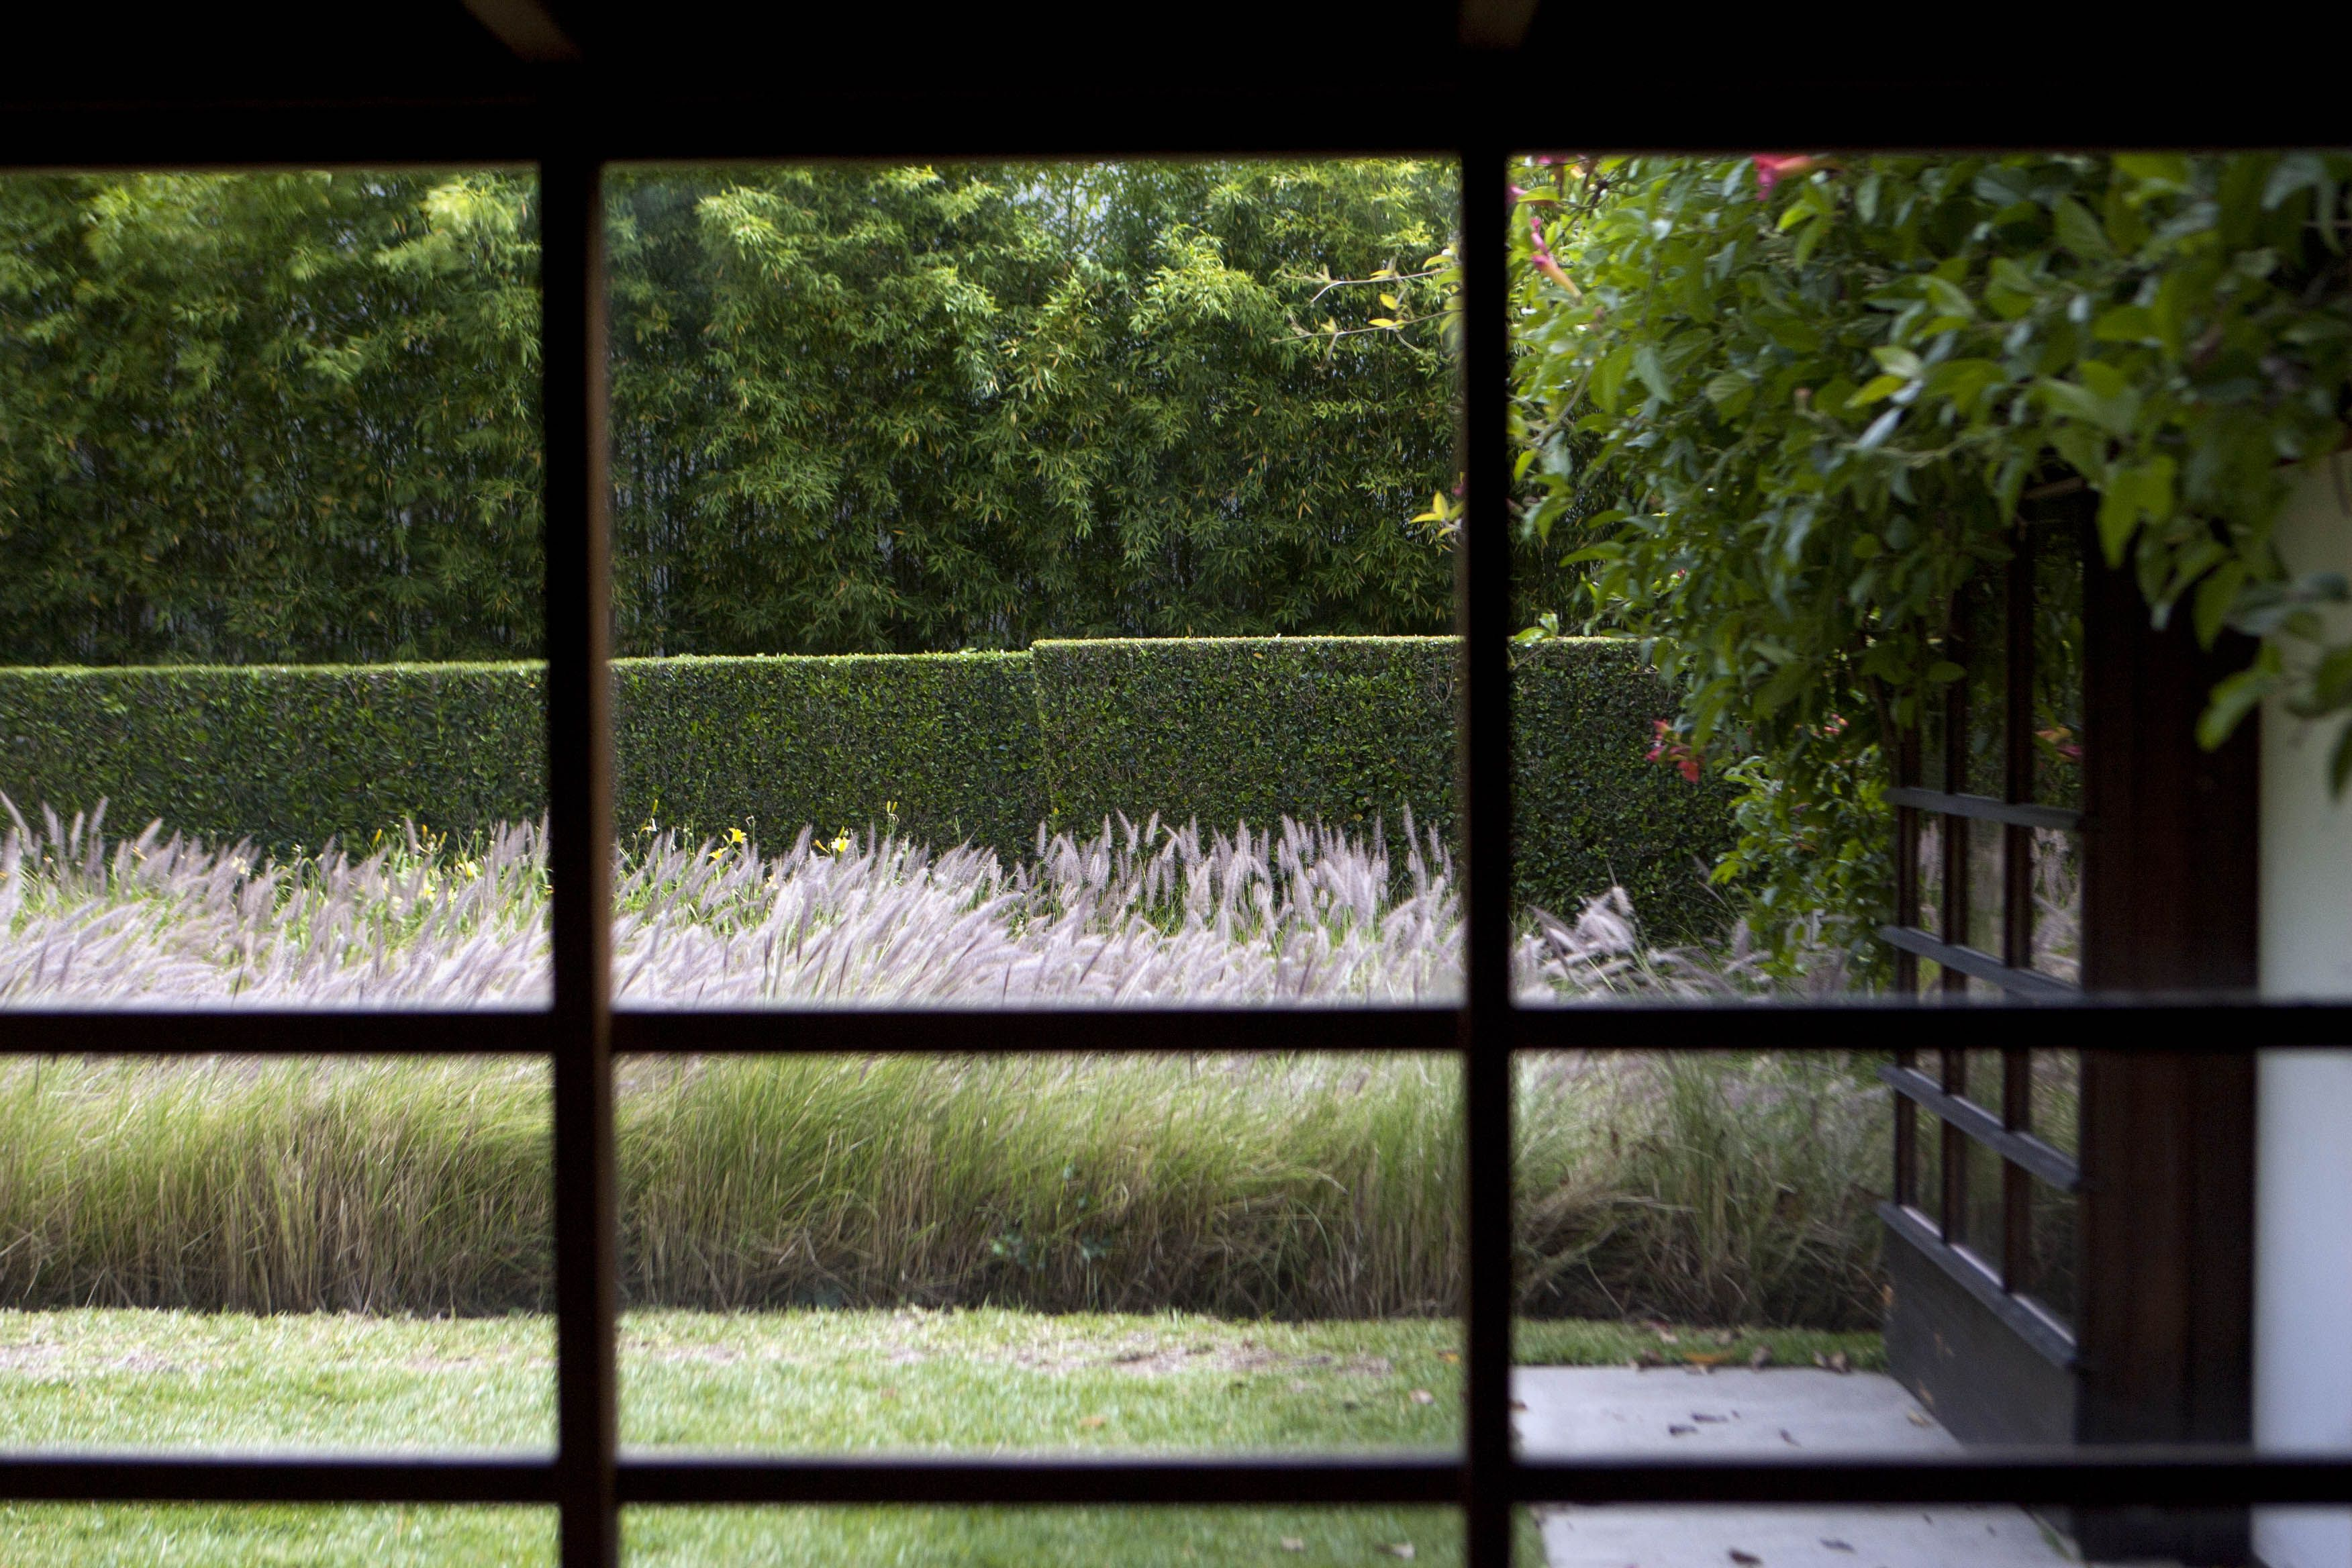 The garden seen from an interior room at the 1922 Schindler House in Los Angeles, California